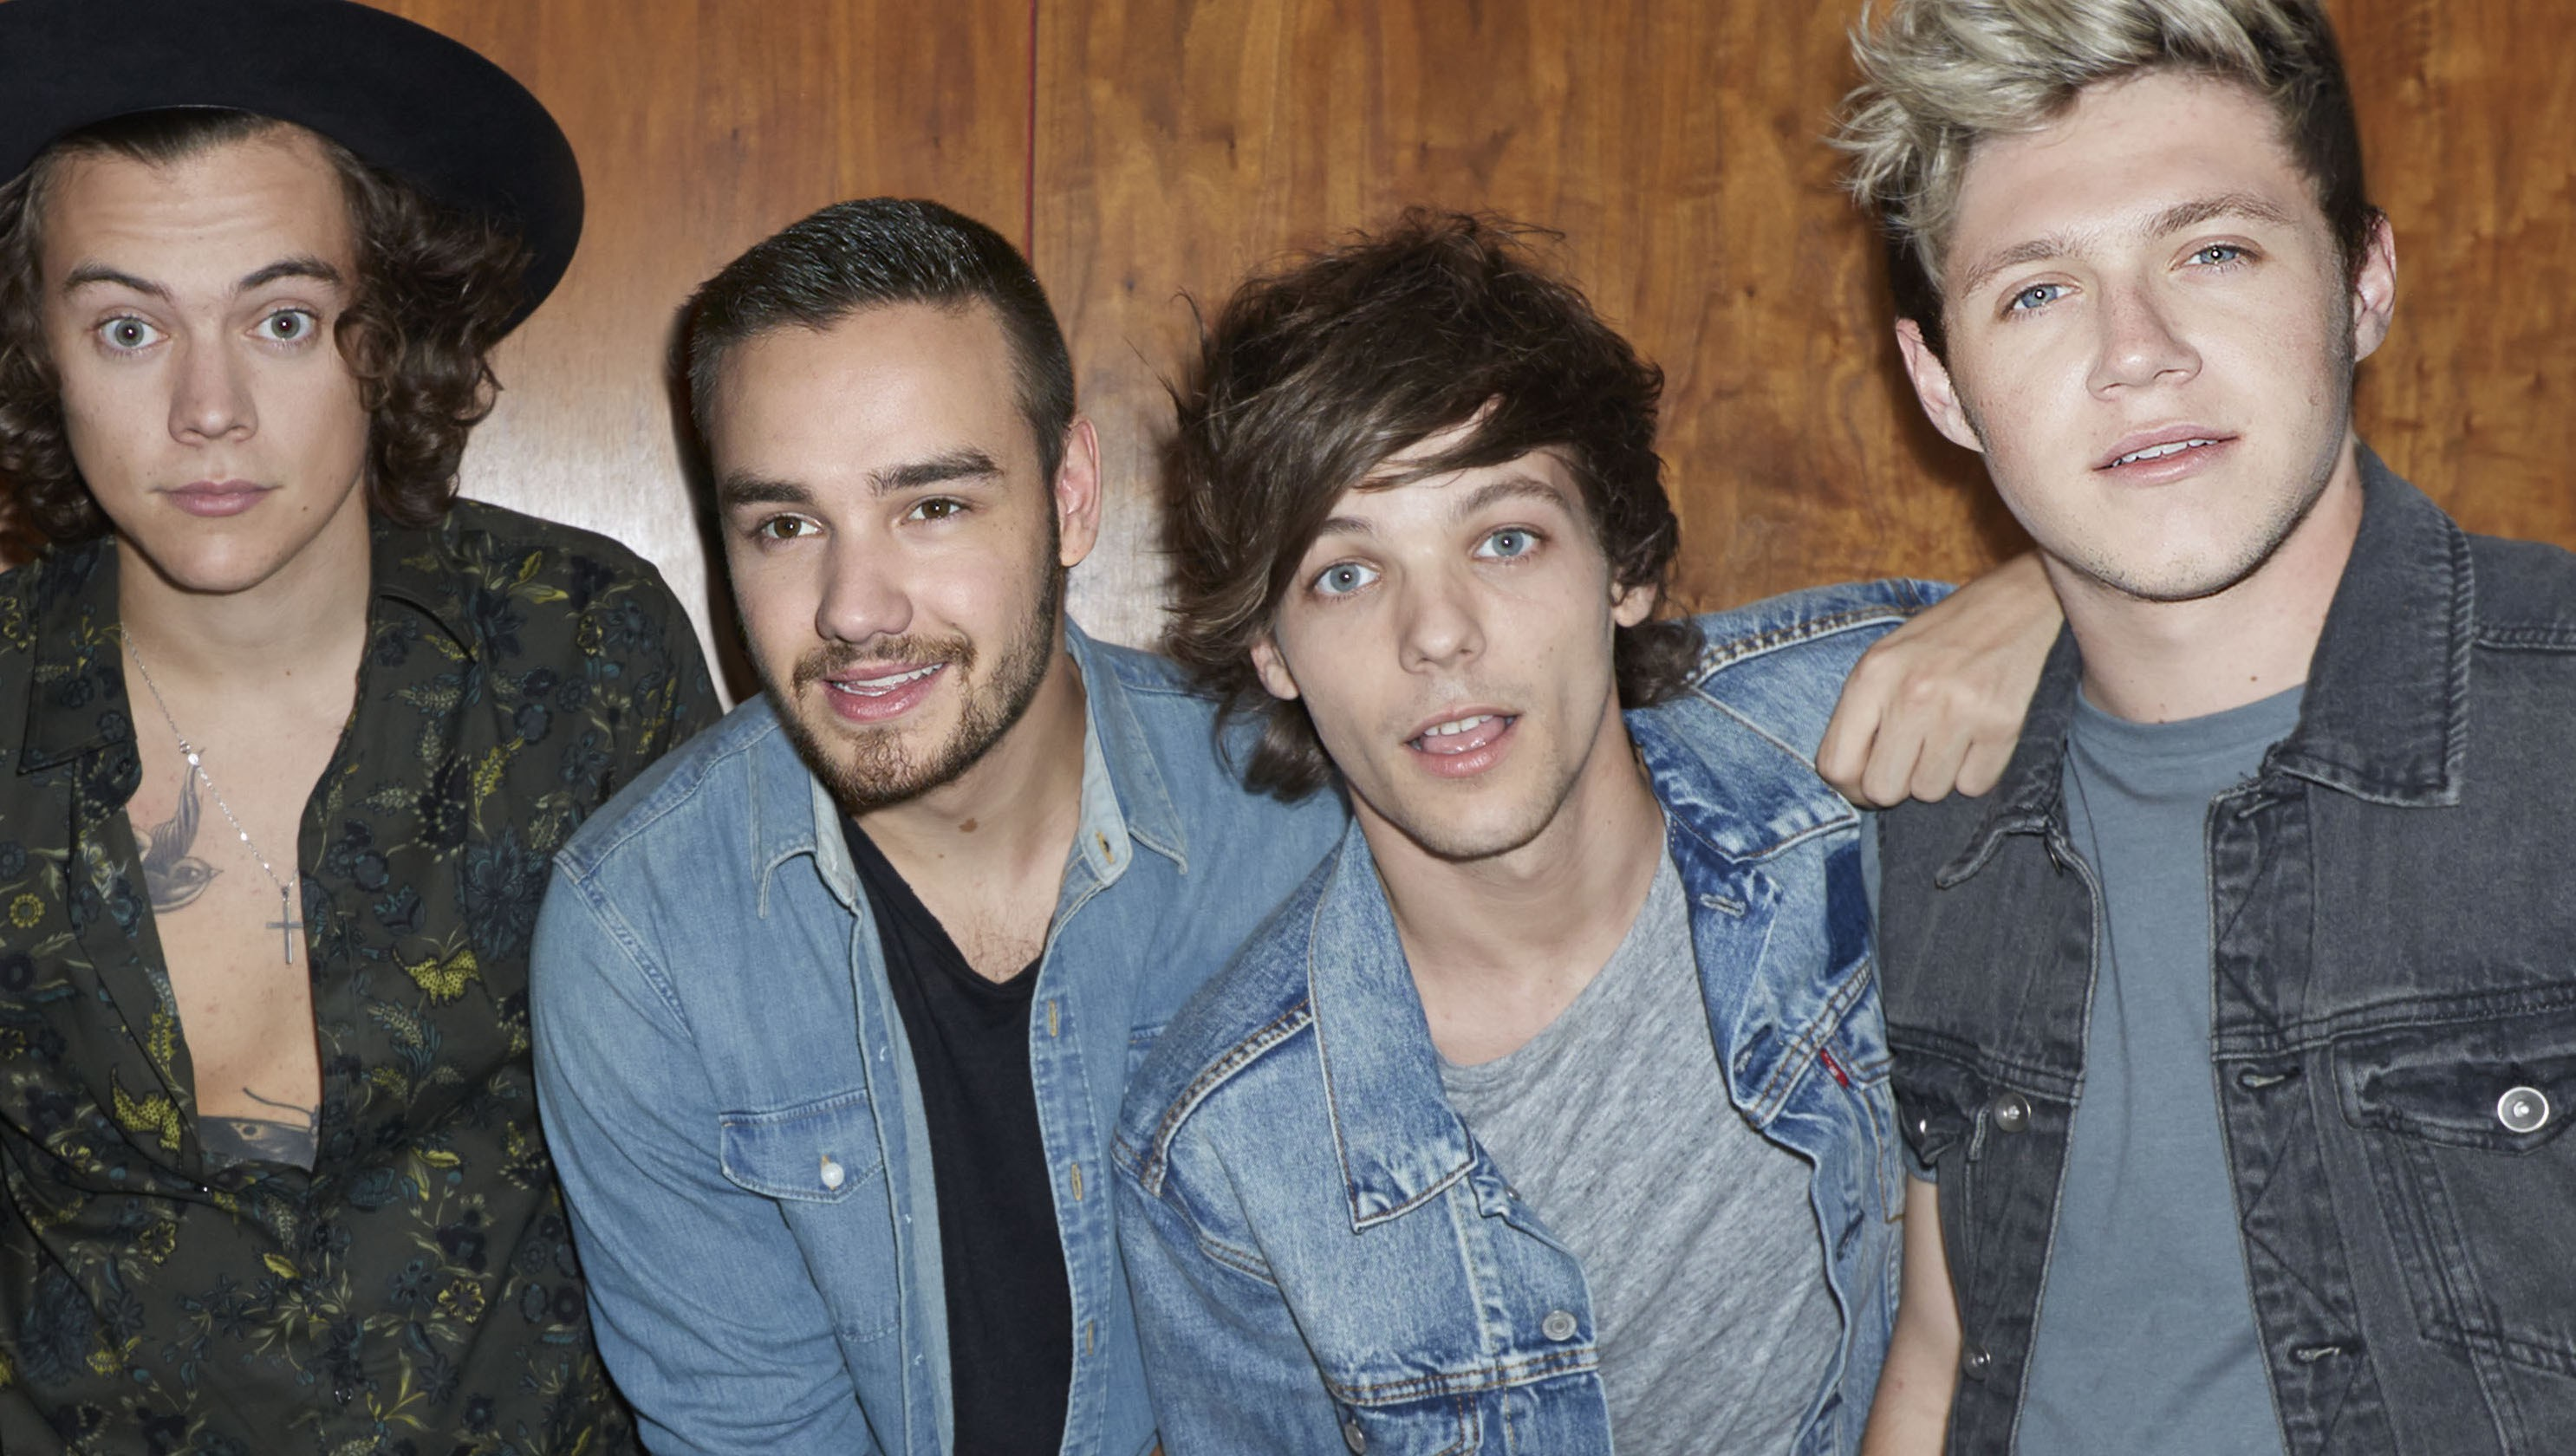 Our angels in Johannesburg: One Direction top 5 | Maximum Pop!